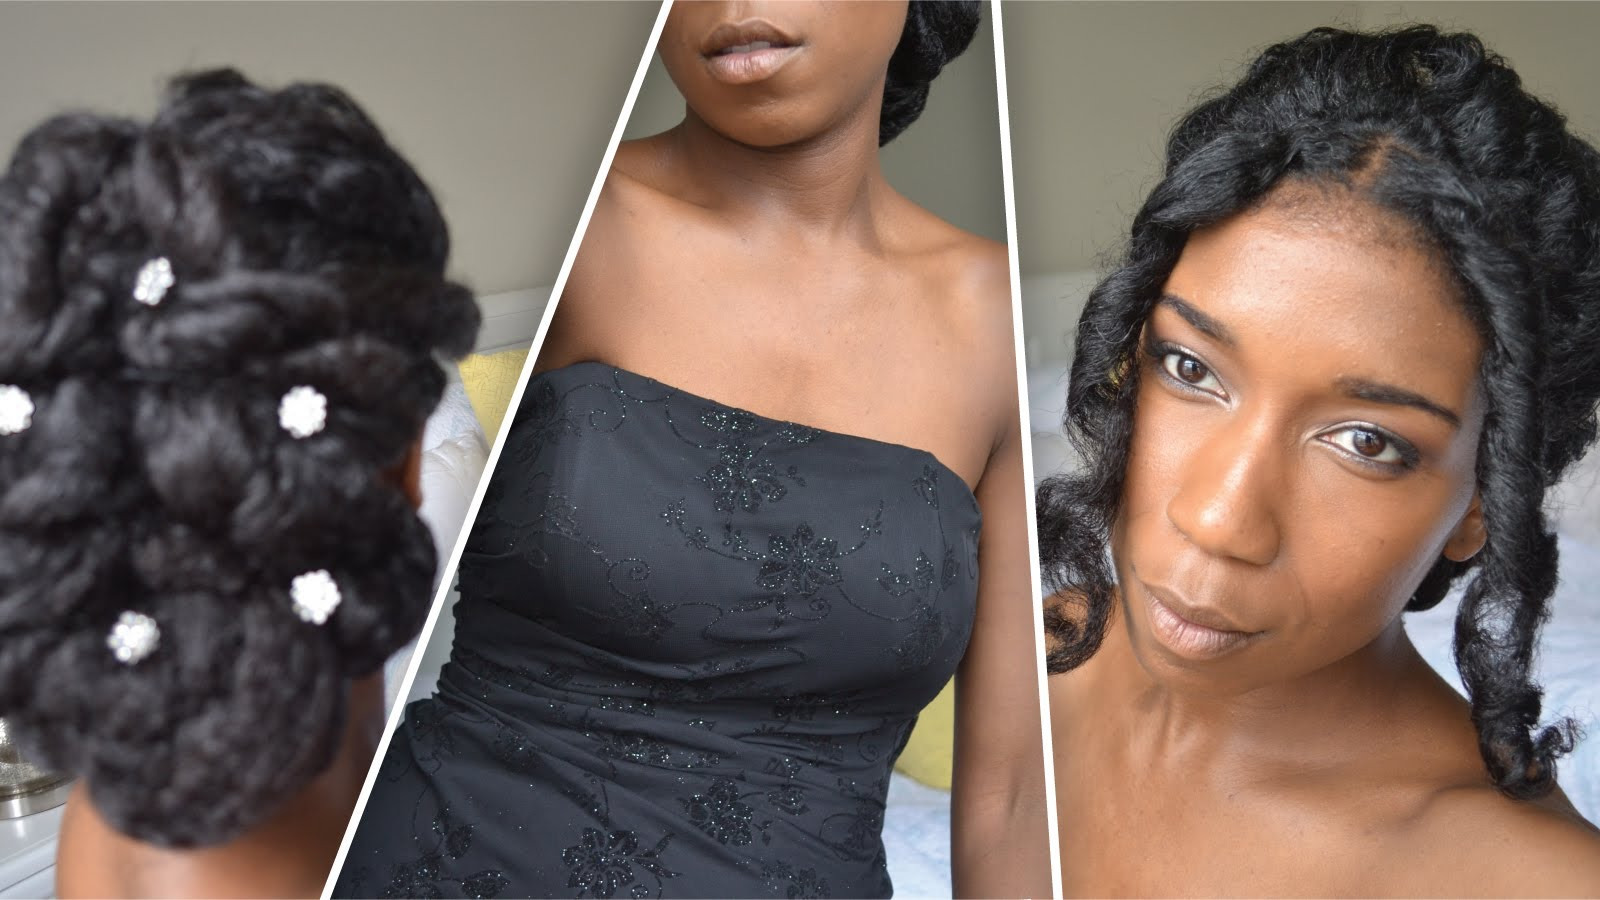 Bridal Braided Updo For Your Next Formal Event